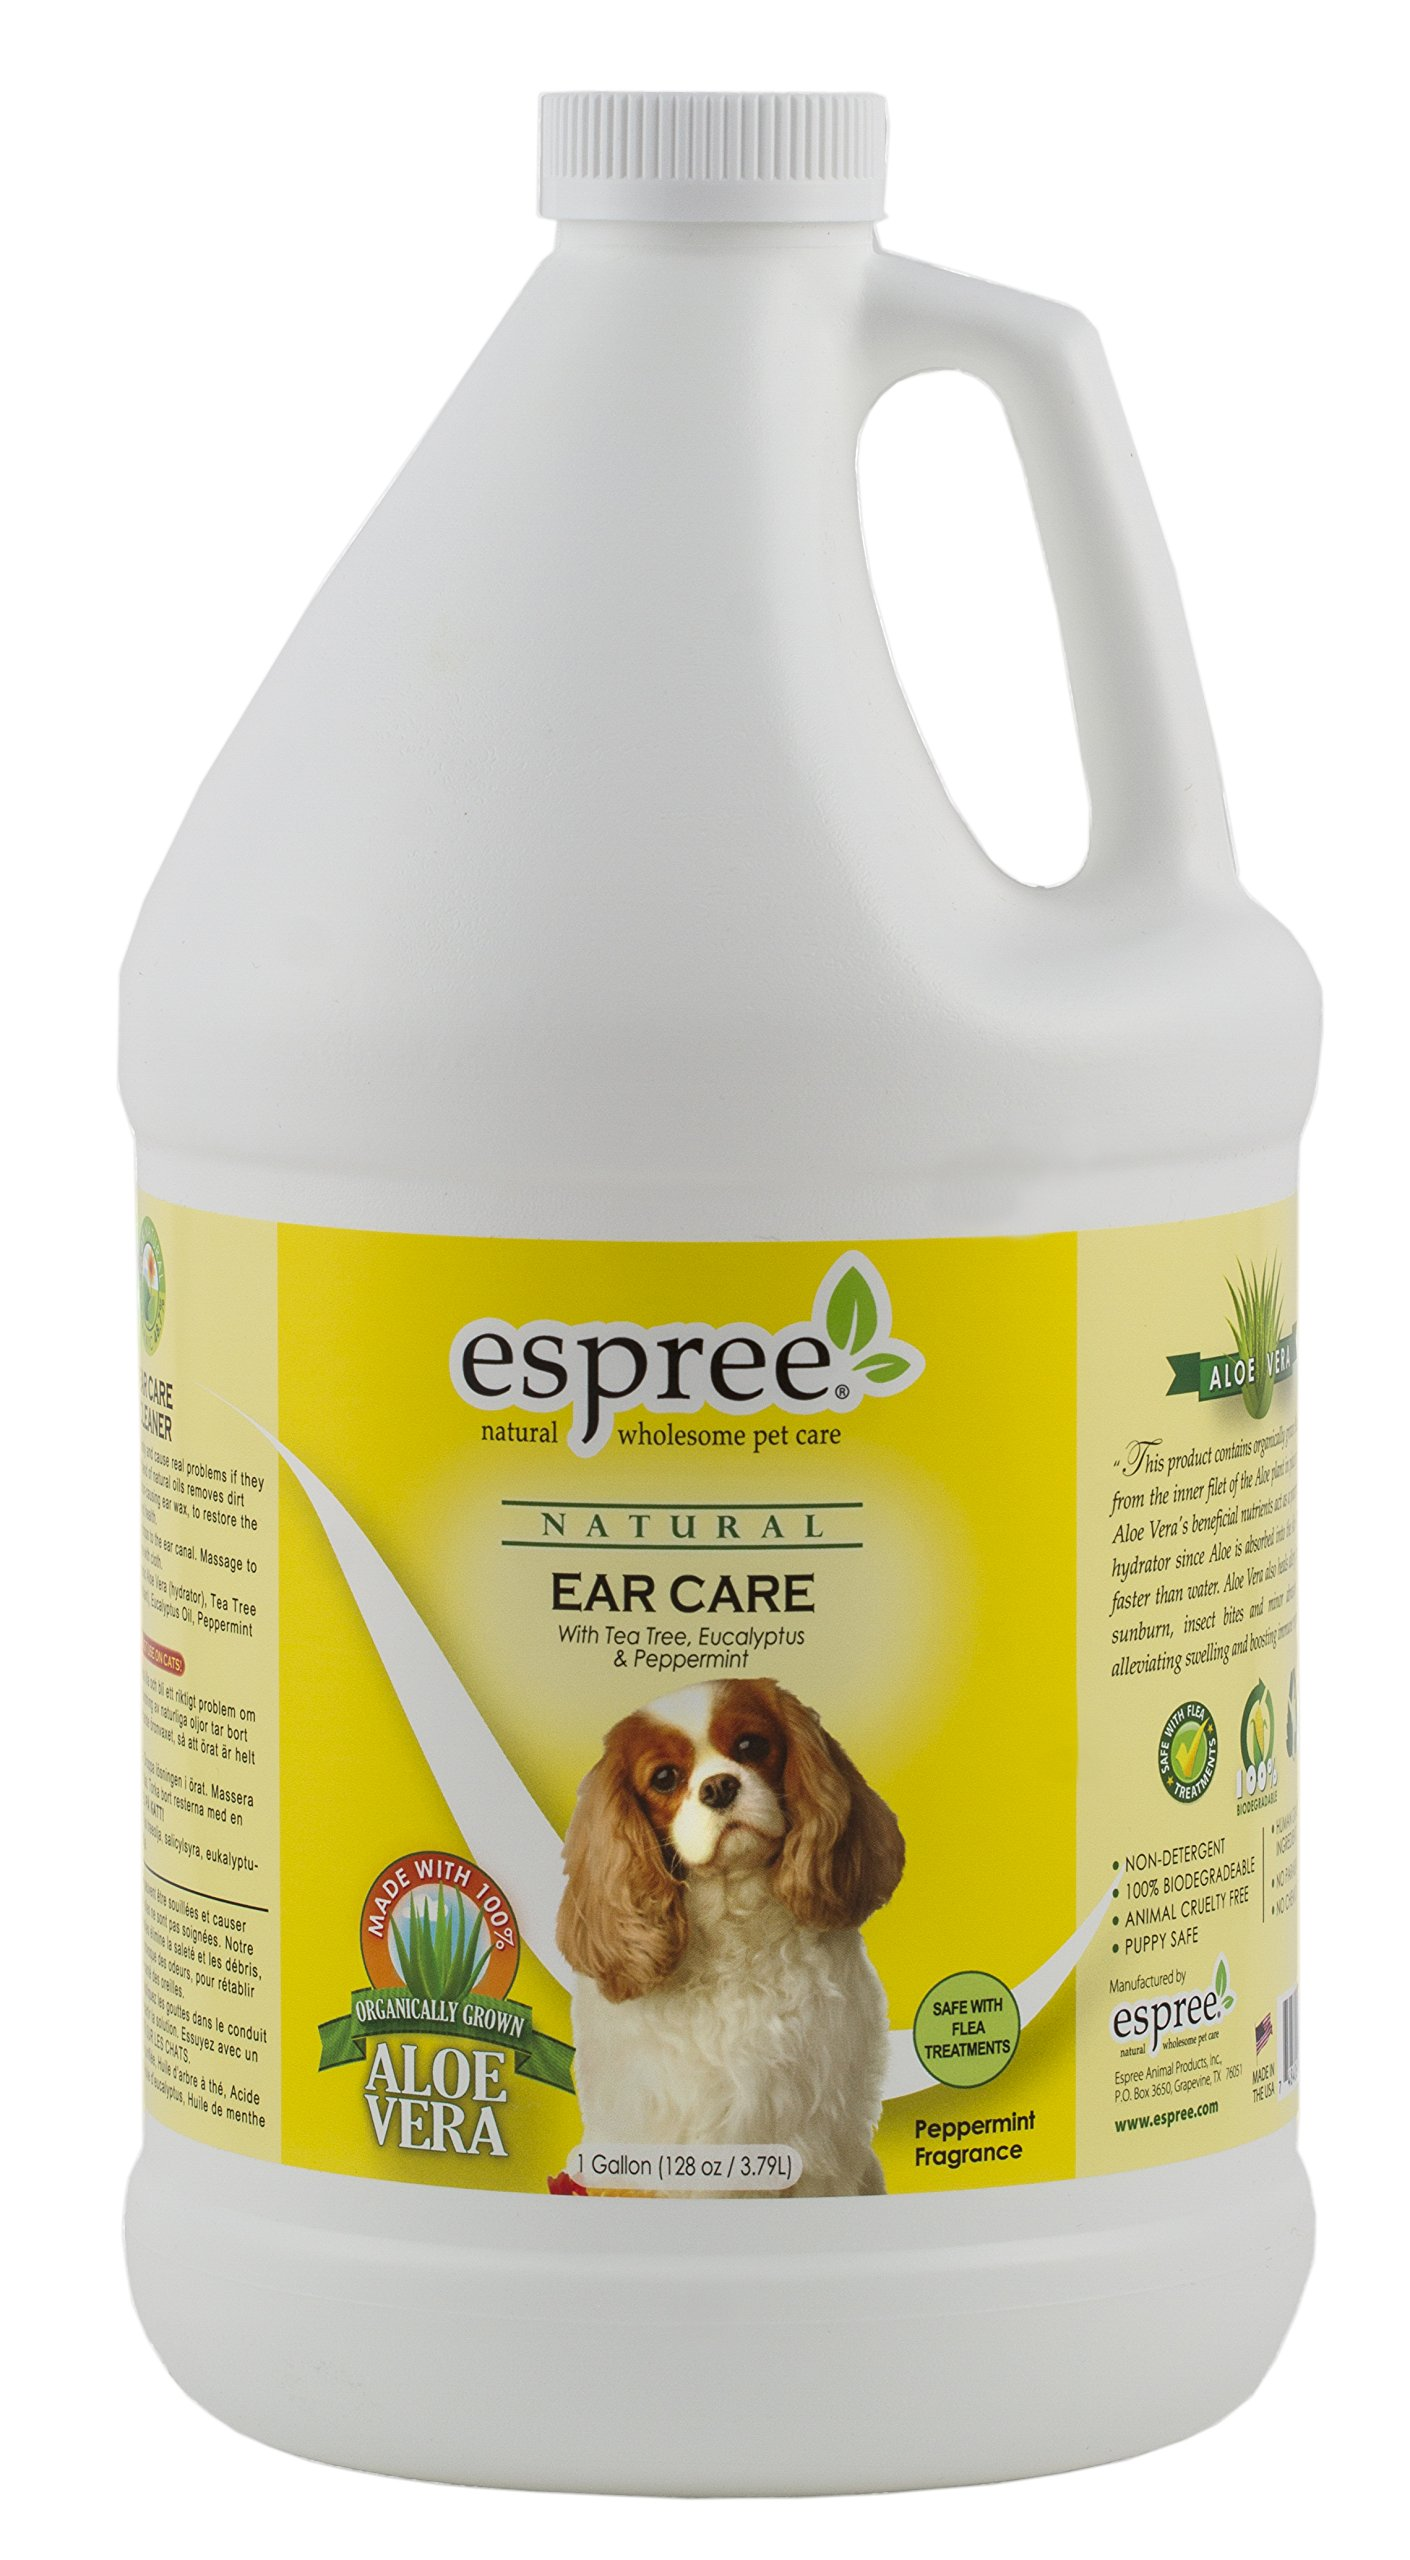 Espree Ear Care Cleaner, 1 gallon by Espree